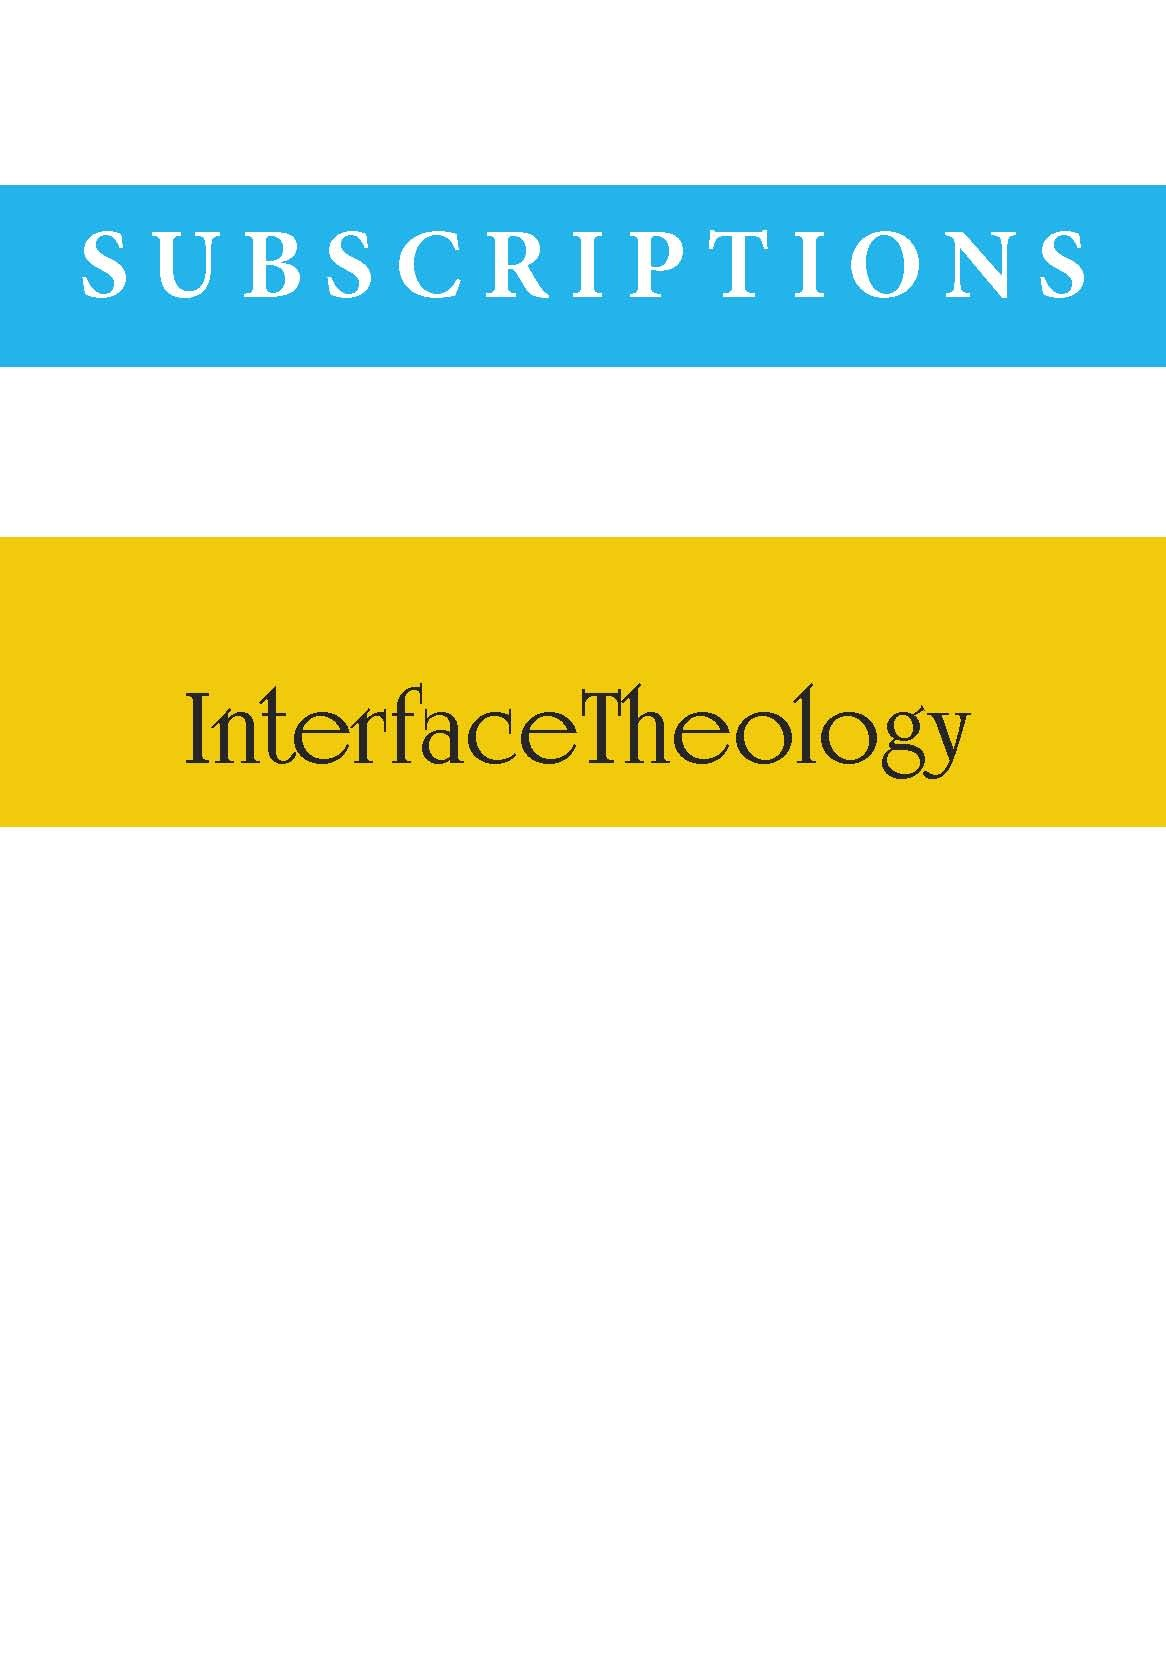 InterfaceTheology Subscriptions (INDIVIDUALS, AUSTRALIA)